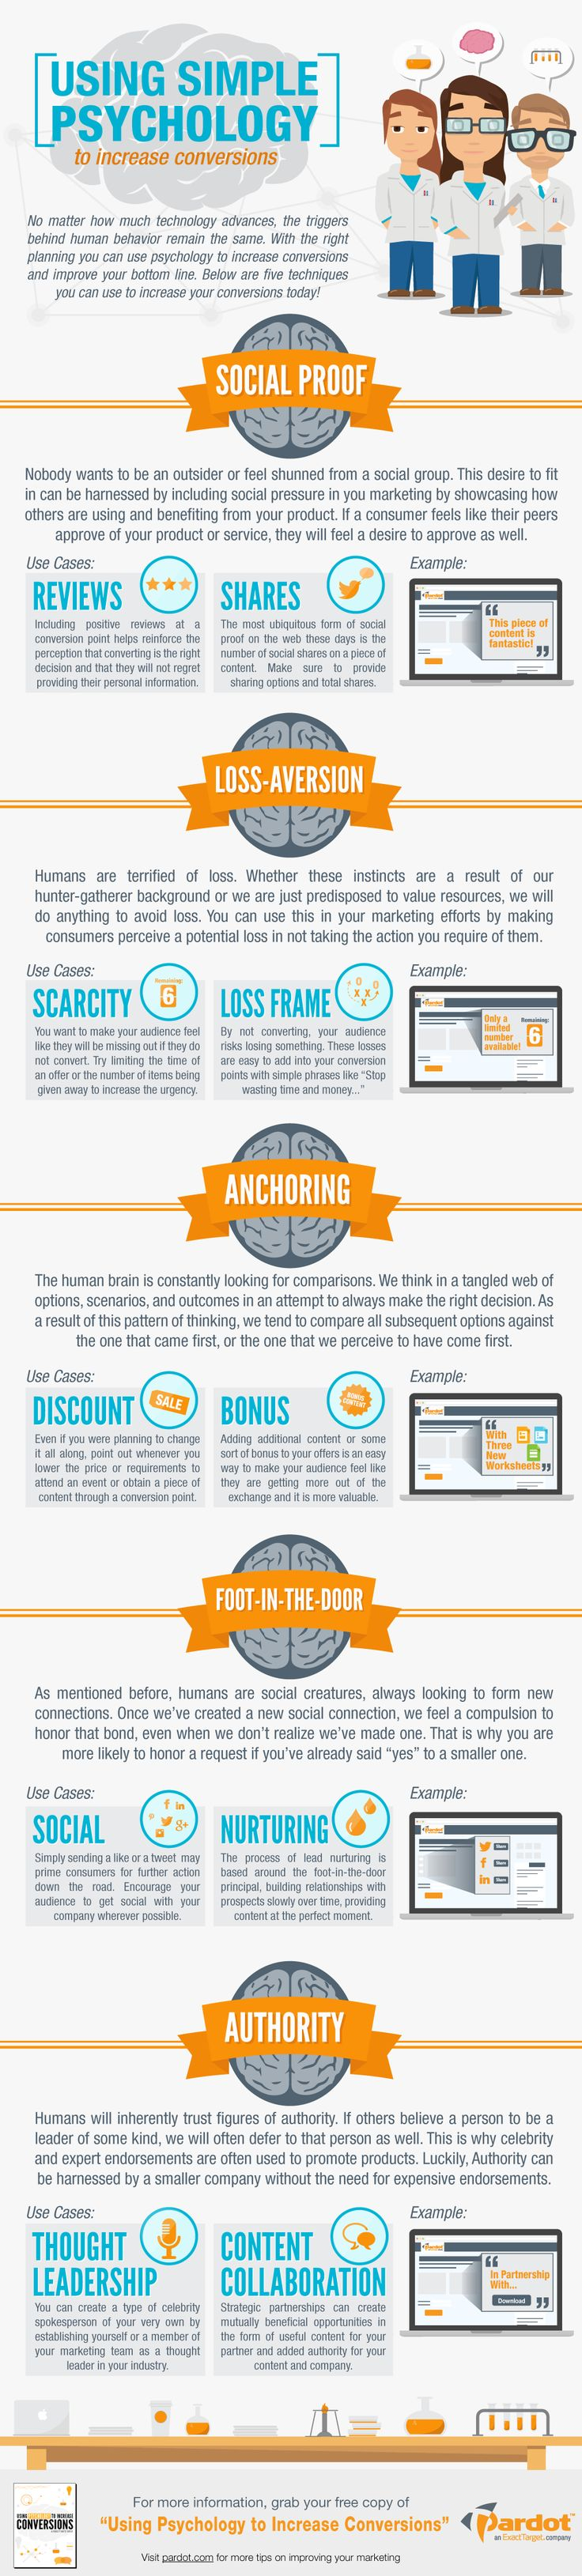 5 Conversion Rate Tips – iNFOGRAPHiCs MANiA 5 Conversion Rate Tips: Online marke… – Designers.ca